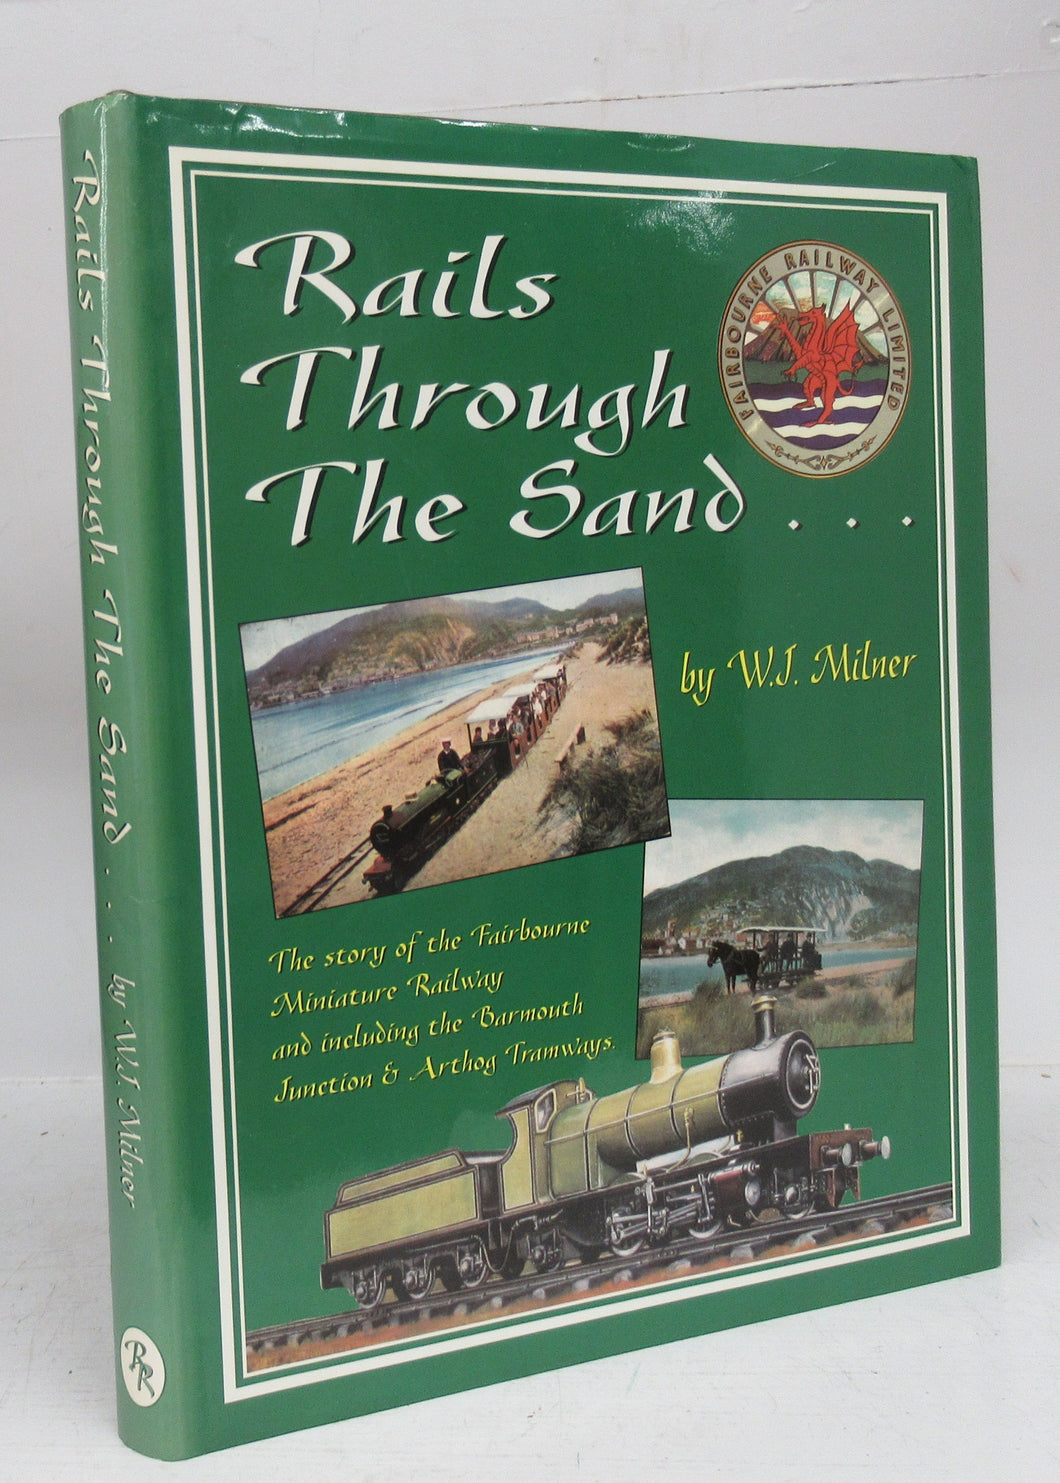 Rails Through The Sand: The story of the Fairbourne Miniature Railway and including the Barmouth Junction & Arthog Tramways